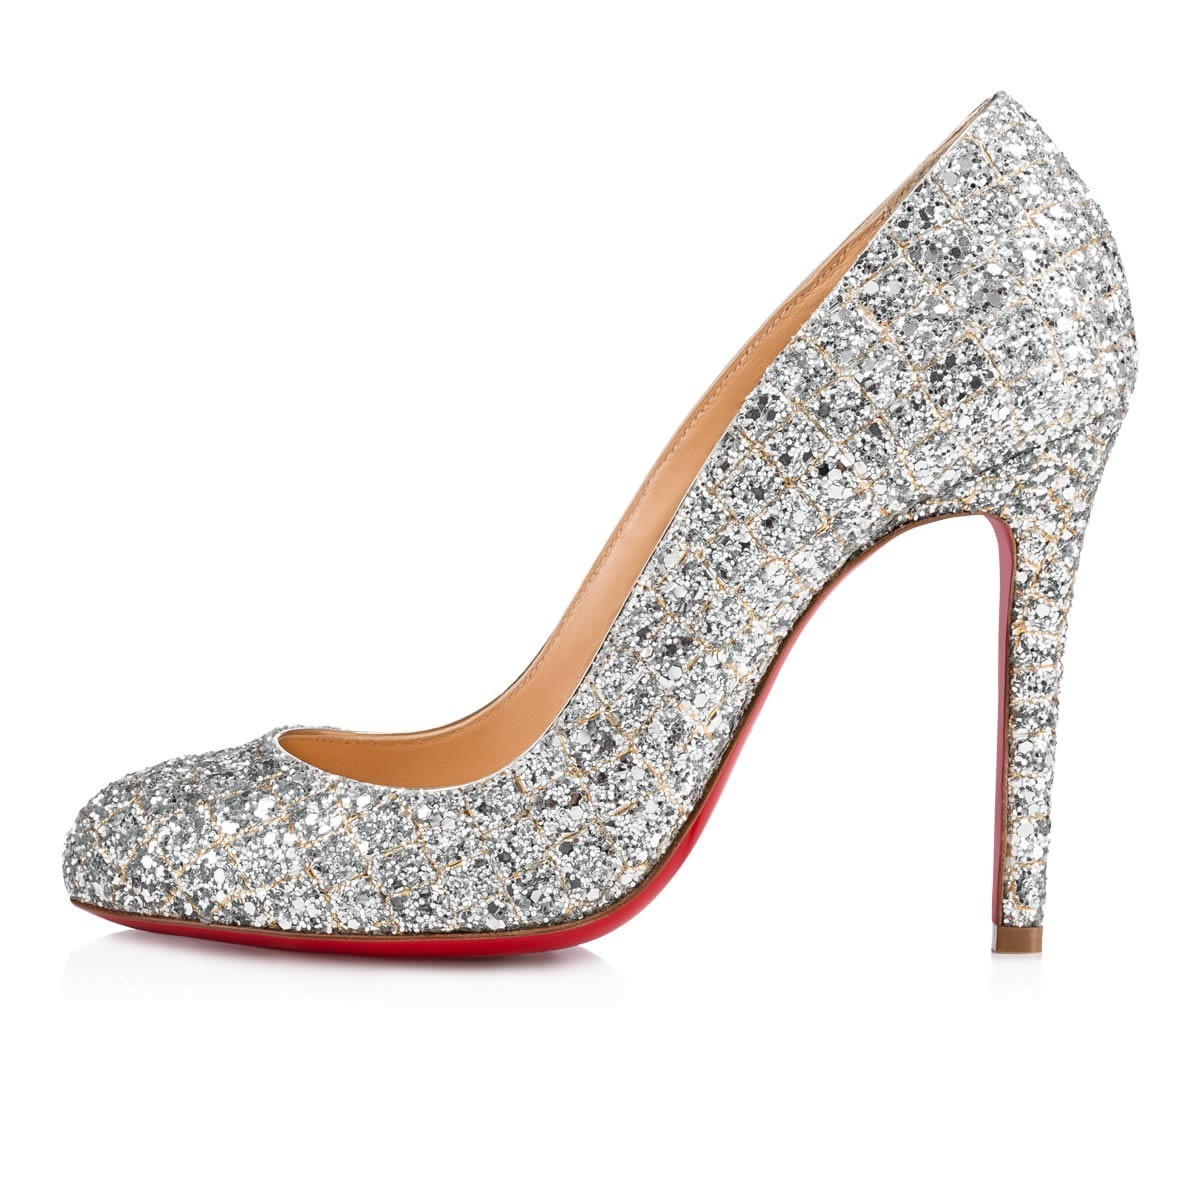 《Christian Louboutin》 Pigalle Follies Aliglitter  パンプス